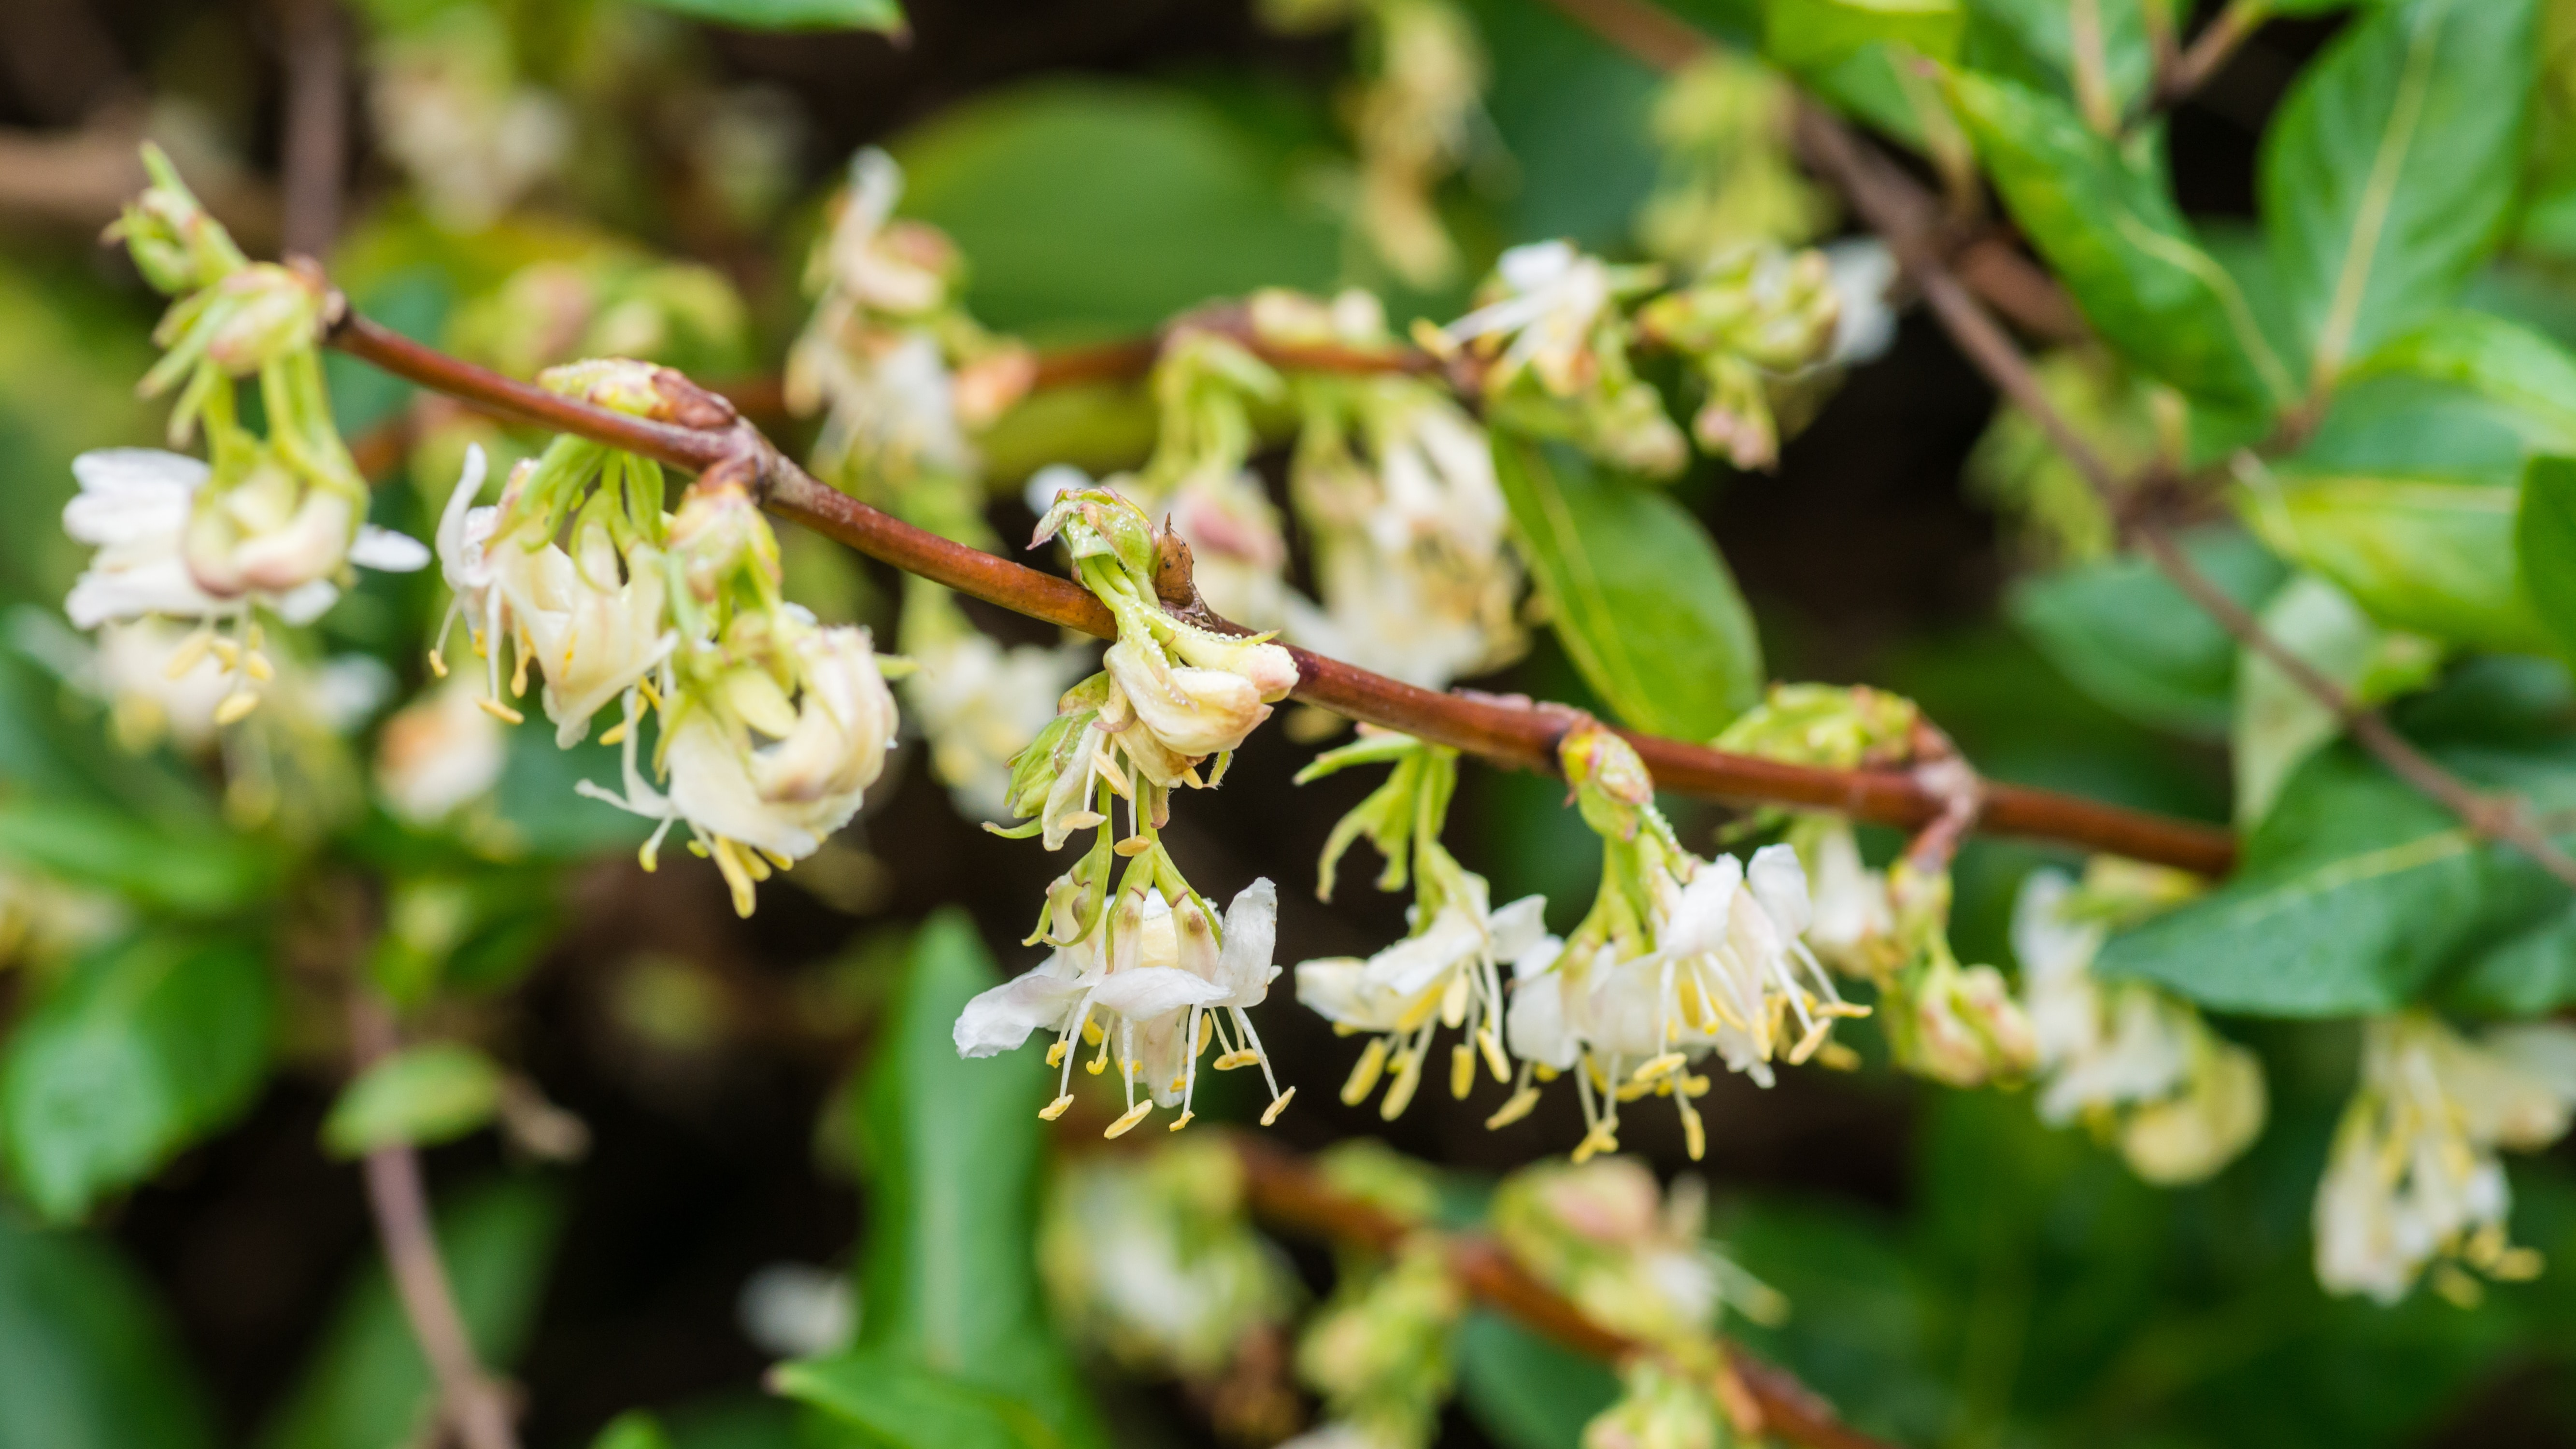 A close-up shot of a branch full of winter honeysuckle blooms.